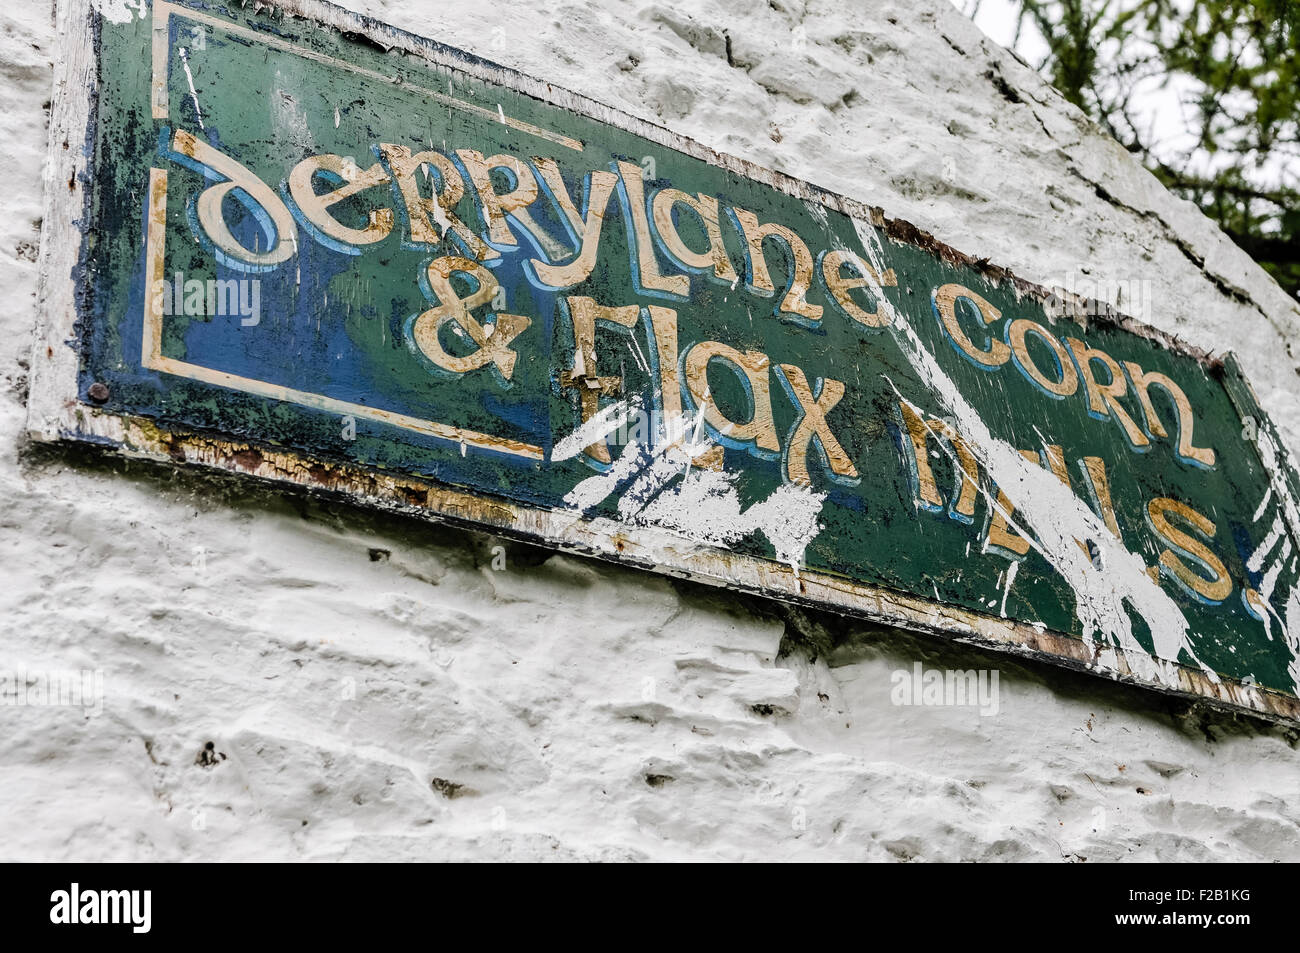 Old sign at Derrylane corn and flax mills - Stock Image